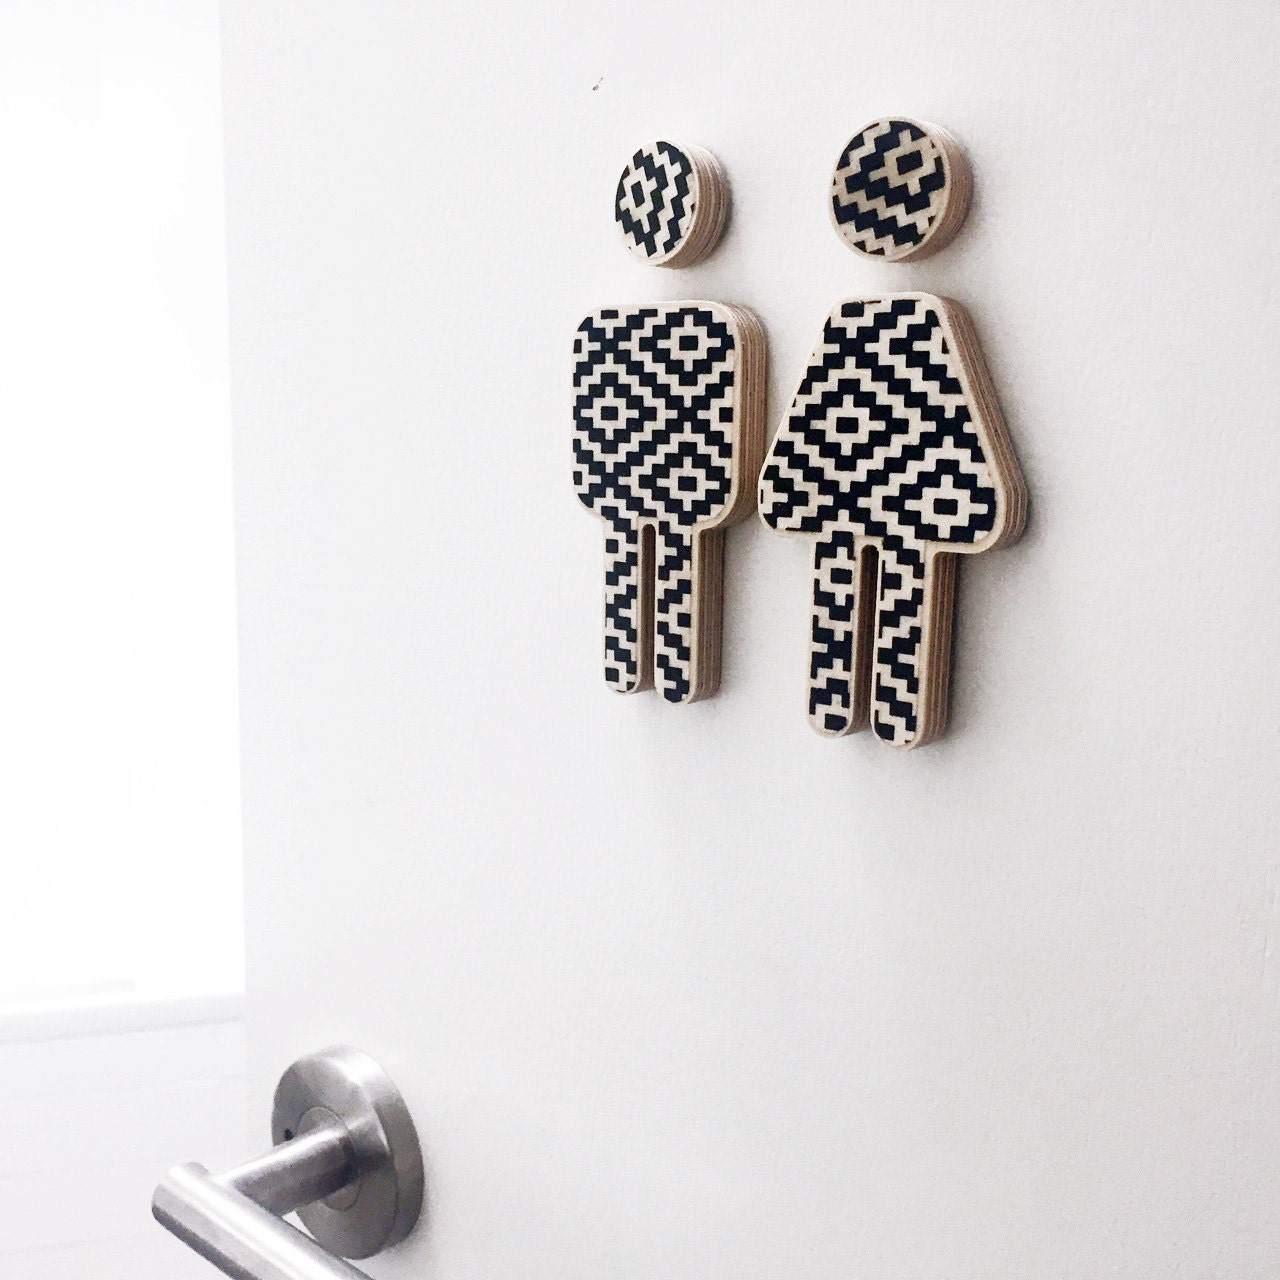 Decor bathroom sign small male female sign monochrome for Male bathroom decor